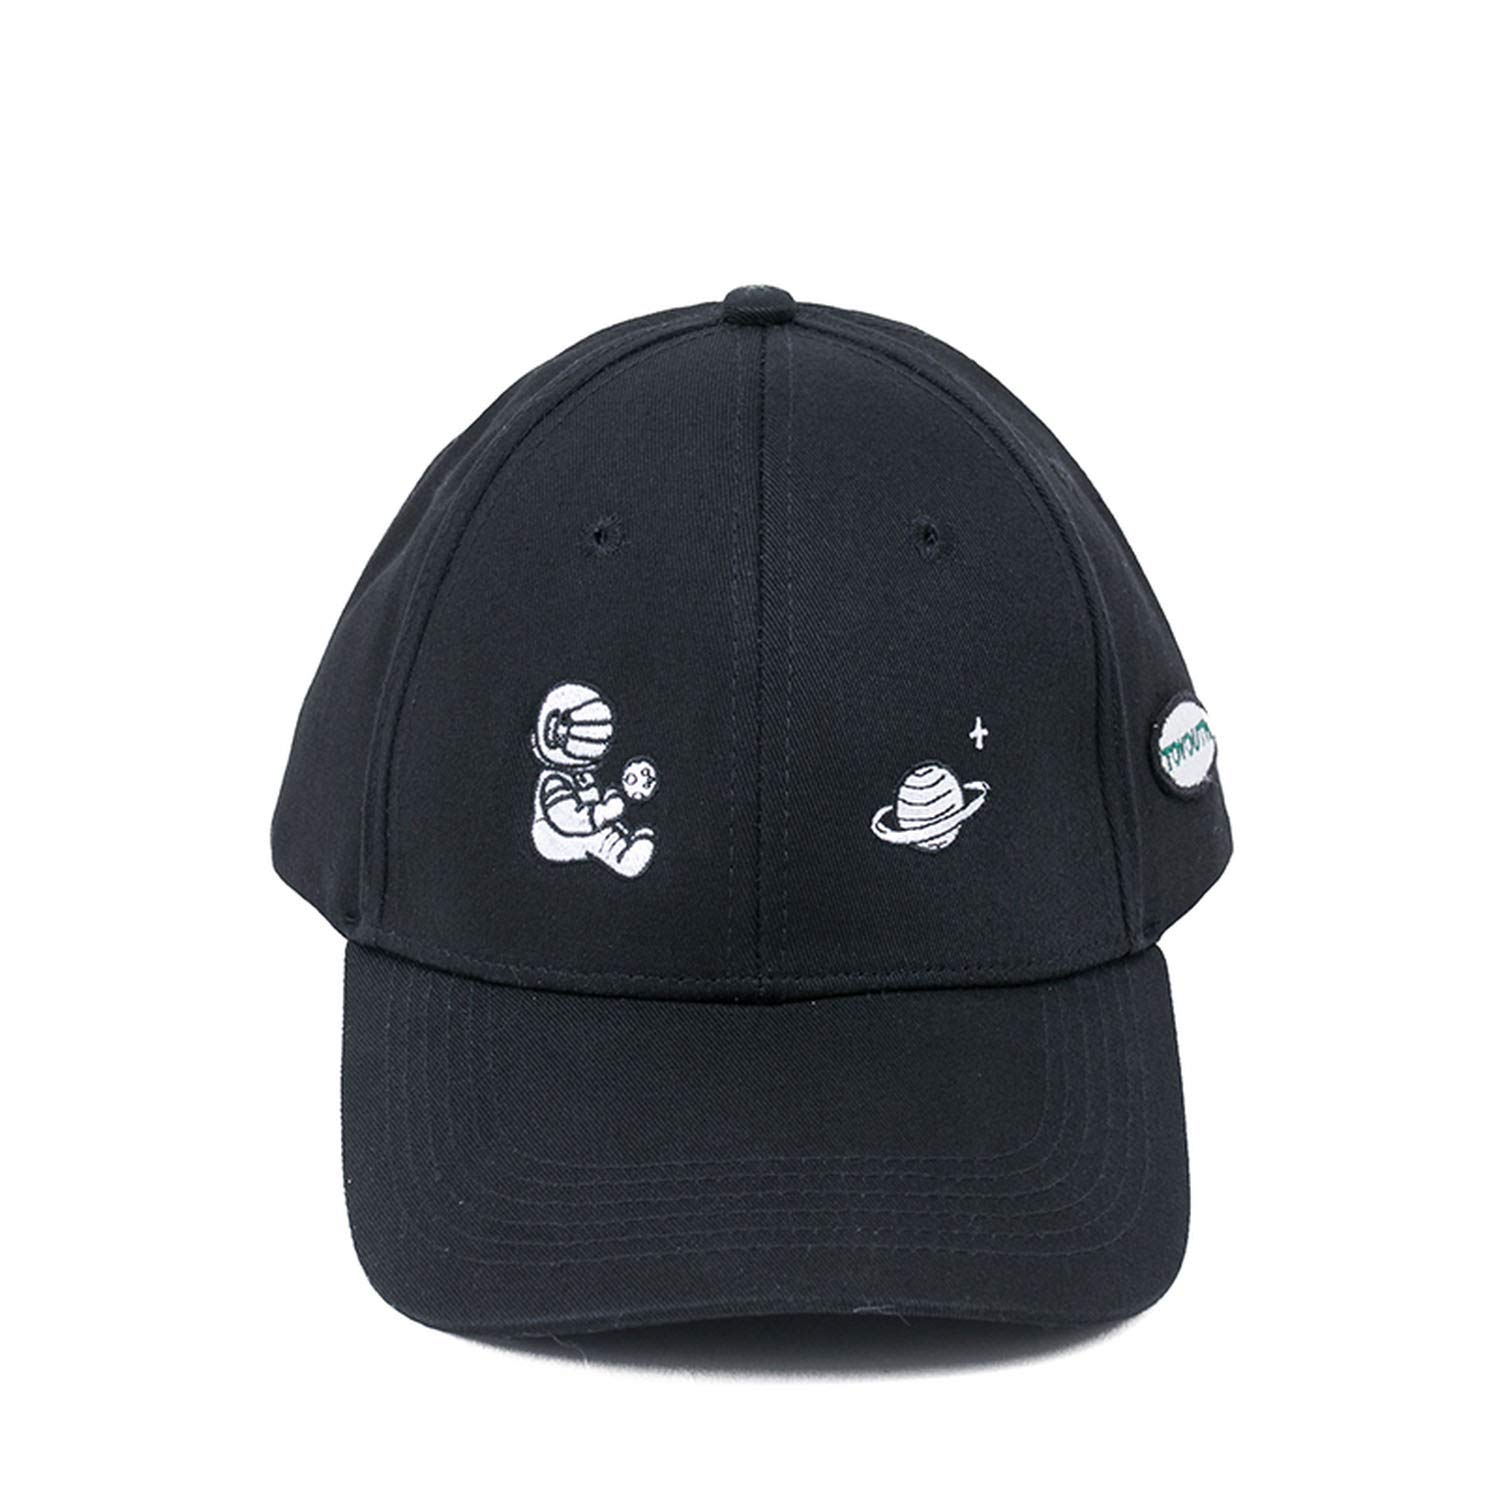 1e9ed9035c3 Women embroidery hat cool sports hat adjustable streetwear cap jpg  1500x1500 Casual cool sports hats